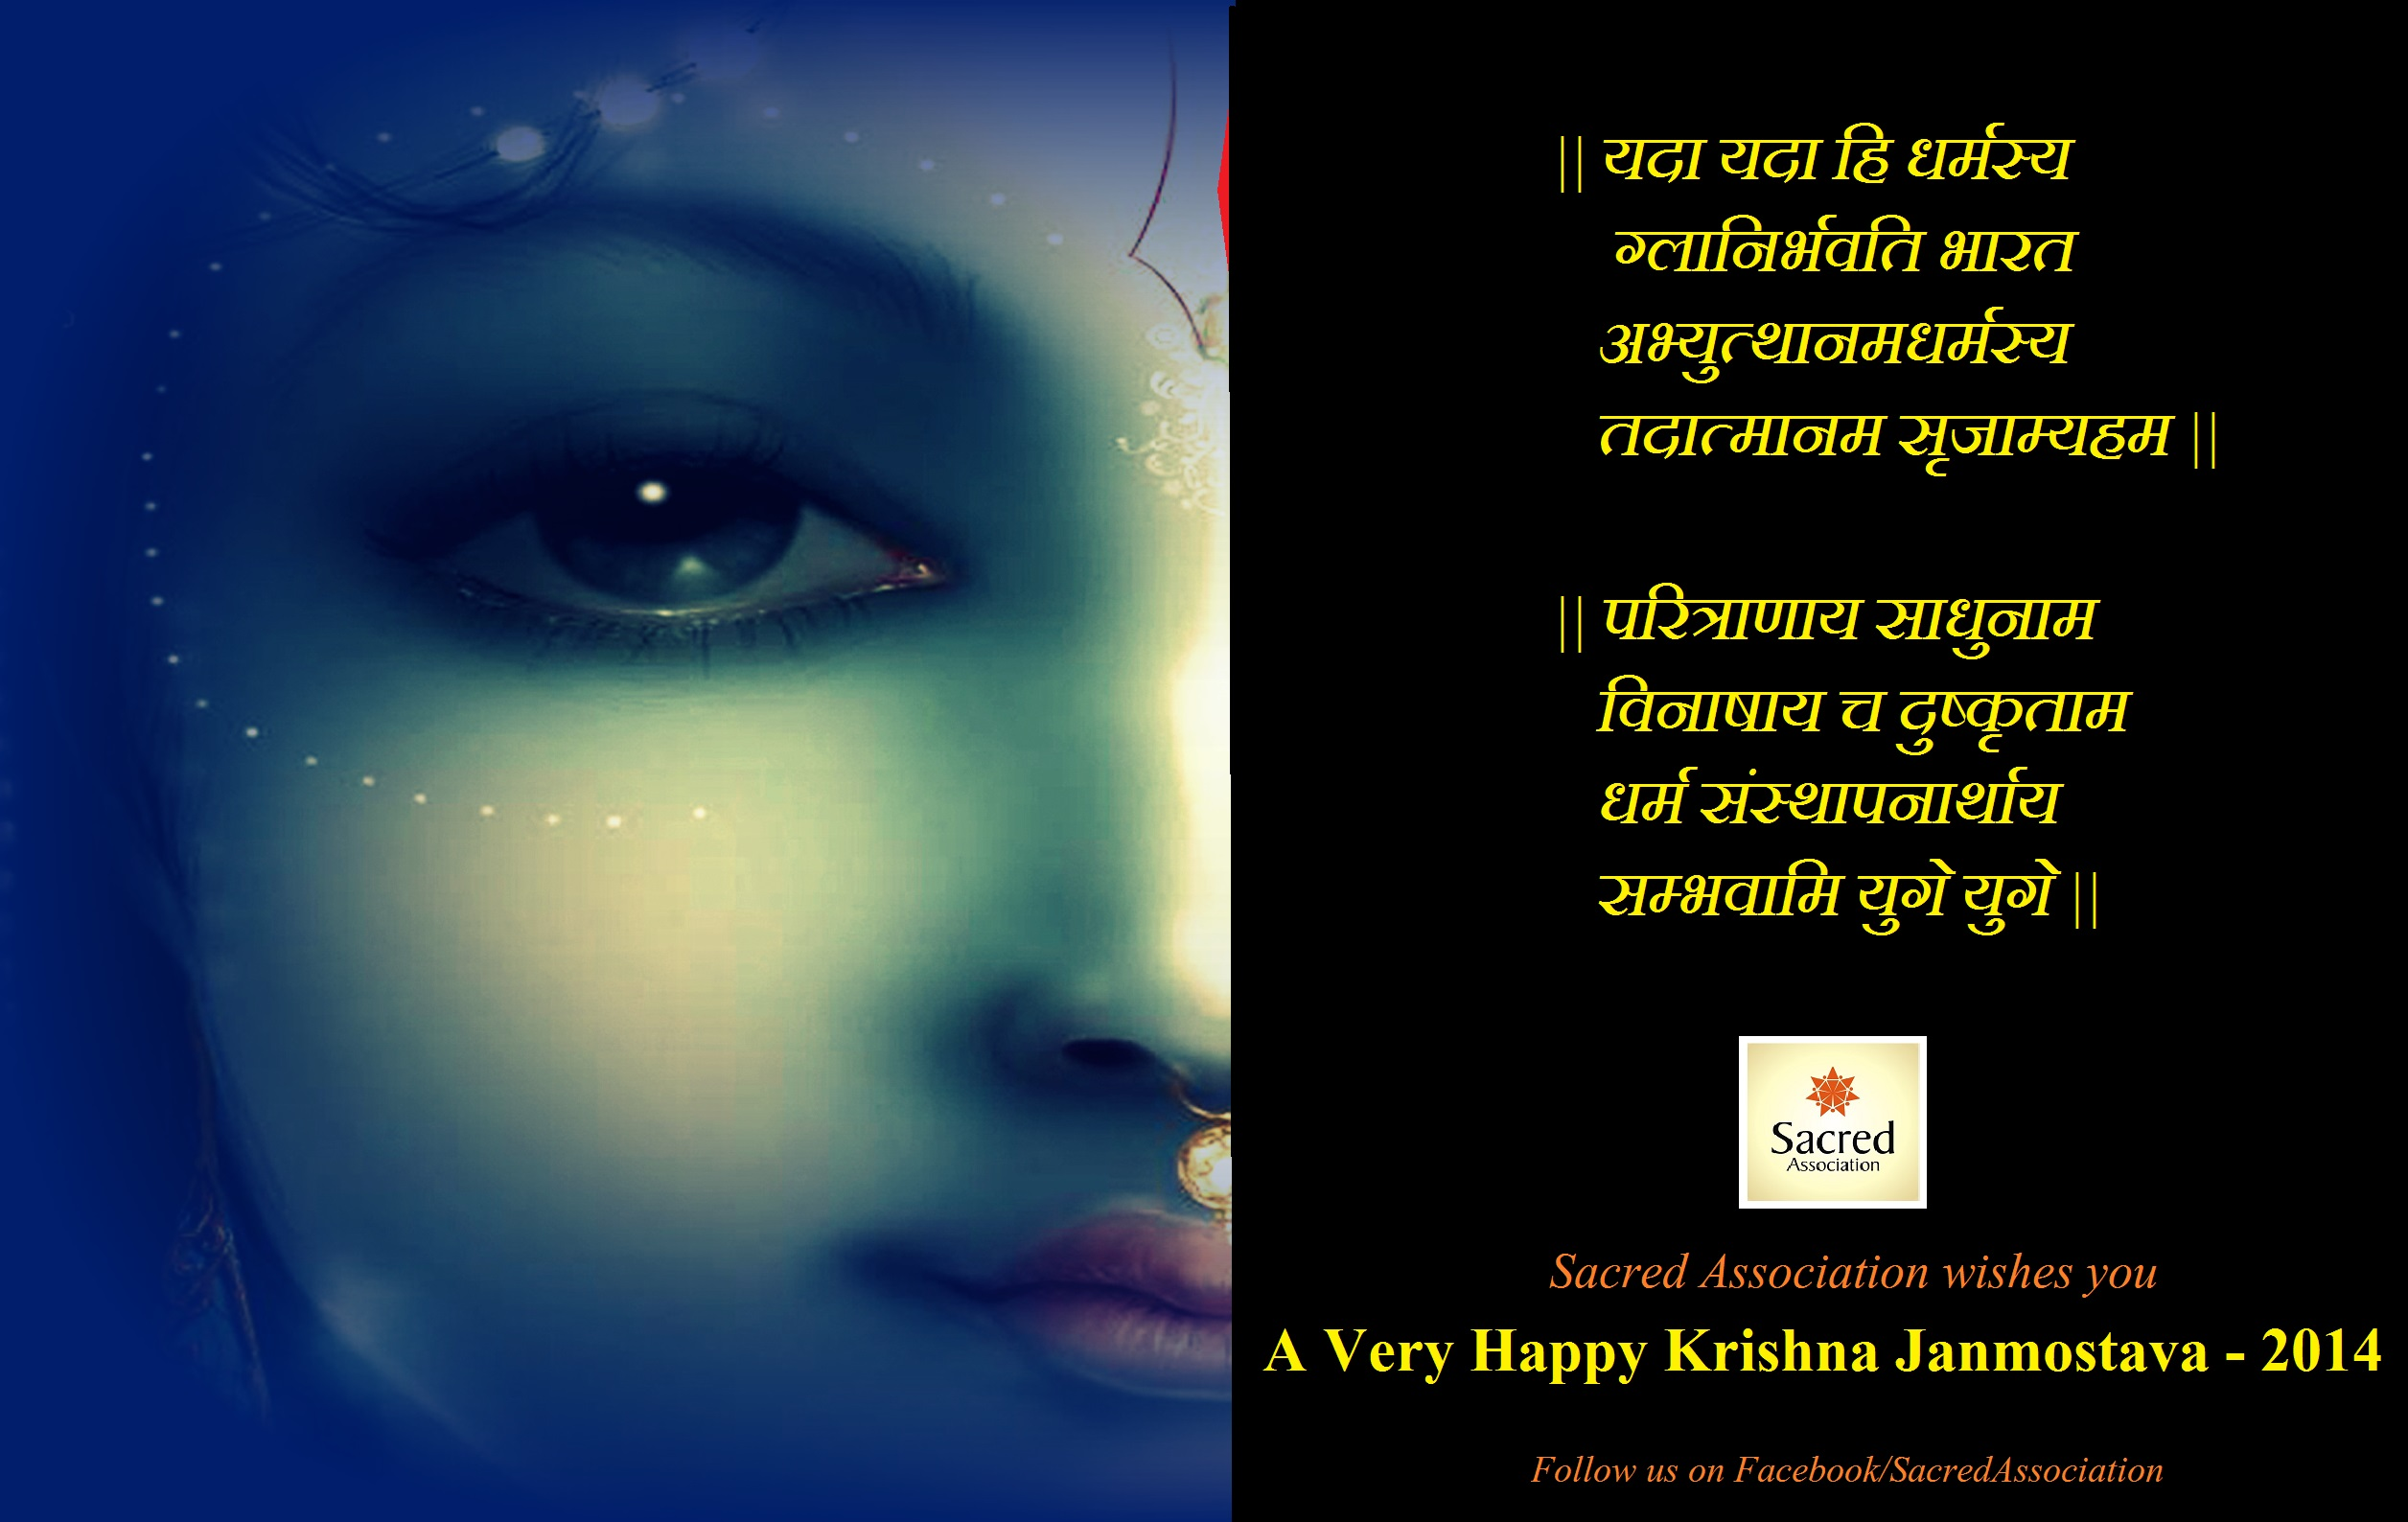 ||Take the pledge on this pious day to protect the weak, spread love and stand up against the evil. Happy Krishna Janmashtami to you all! ||